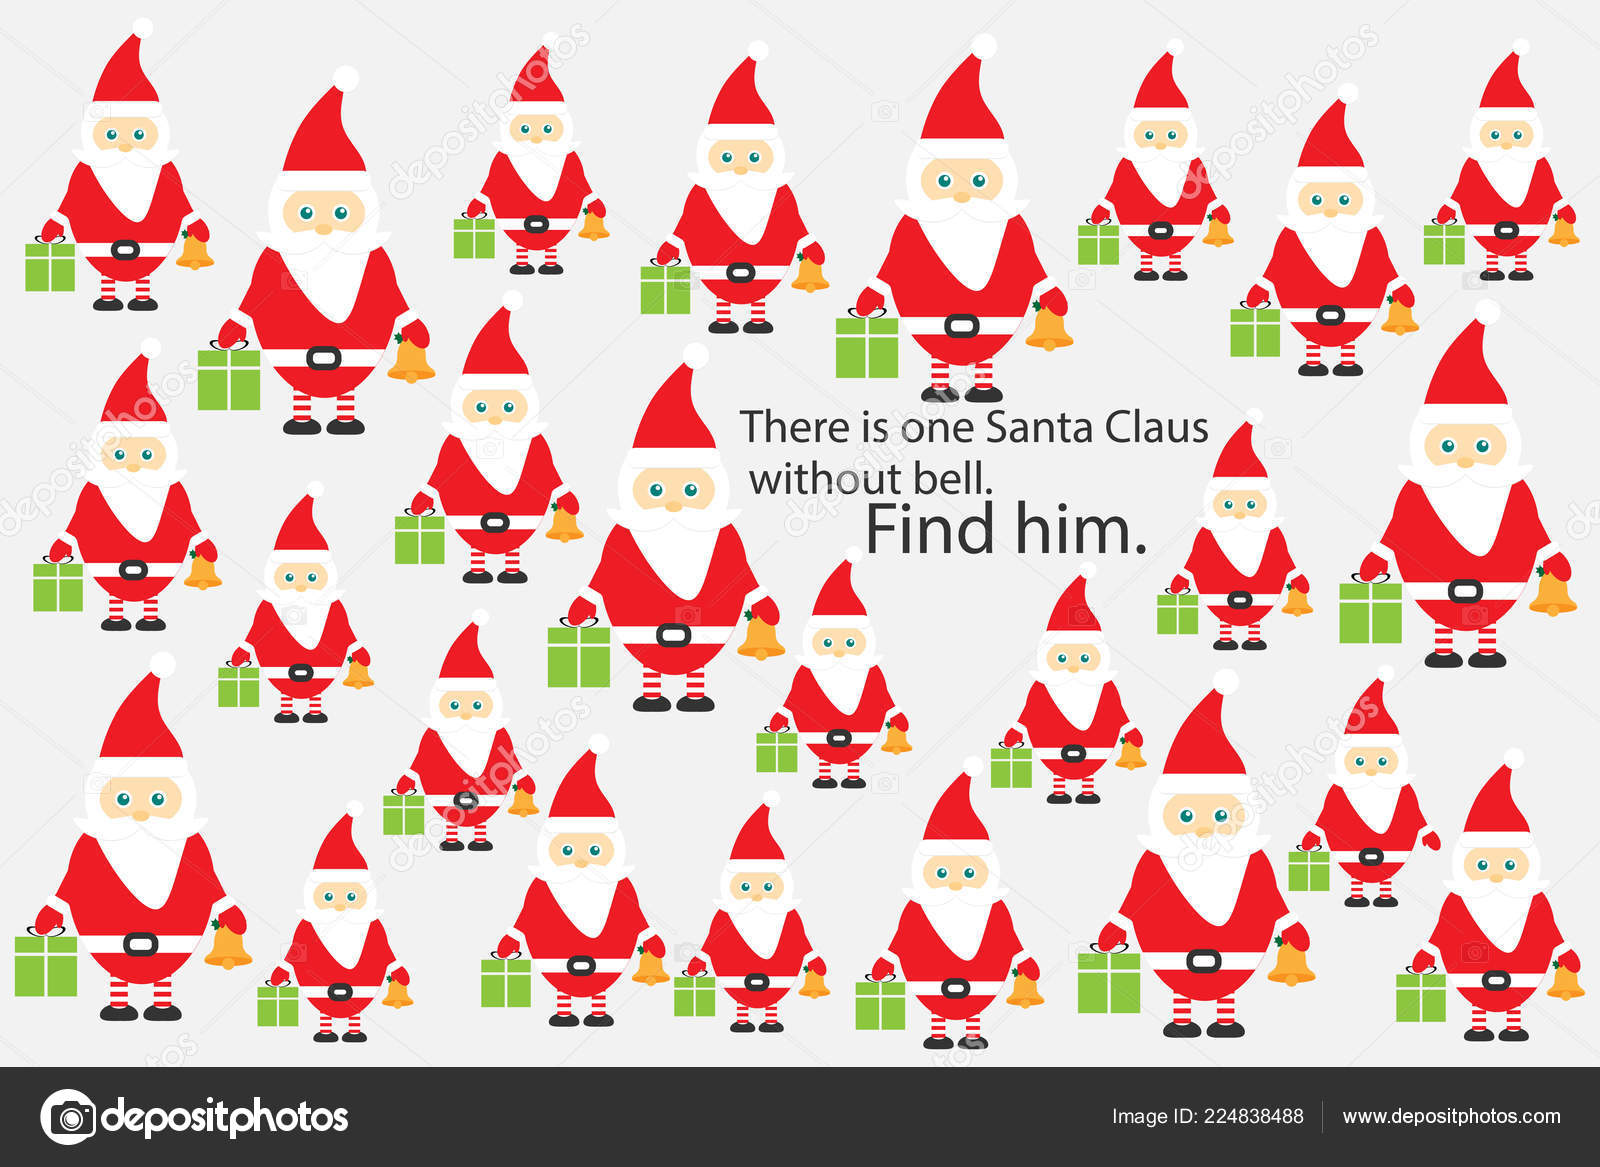 Christmas Preschool.Find Santa Claus Without Bell Christmas Fun Education